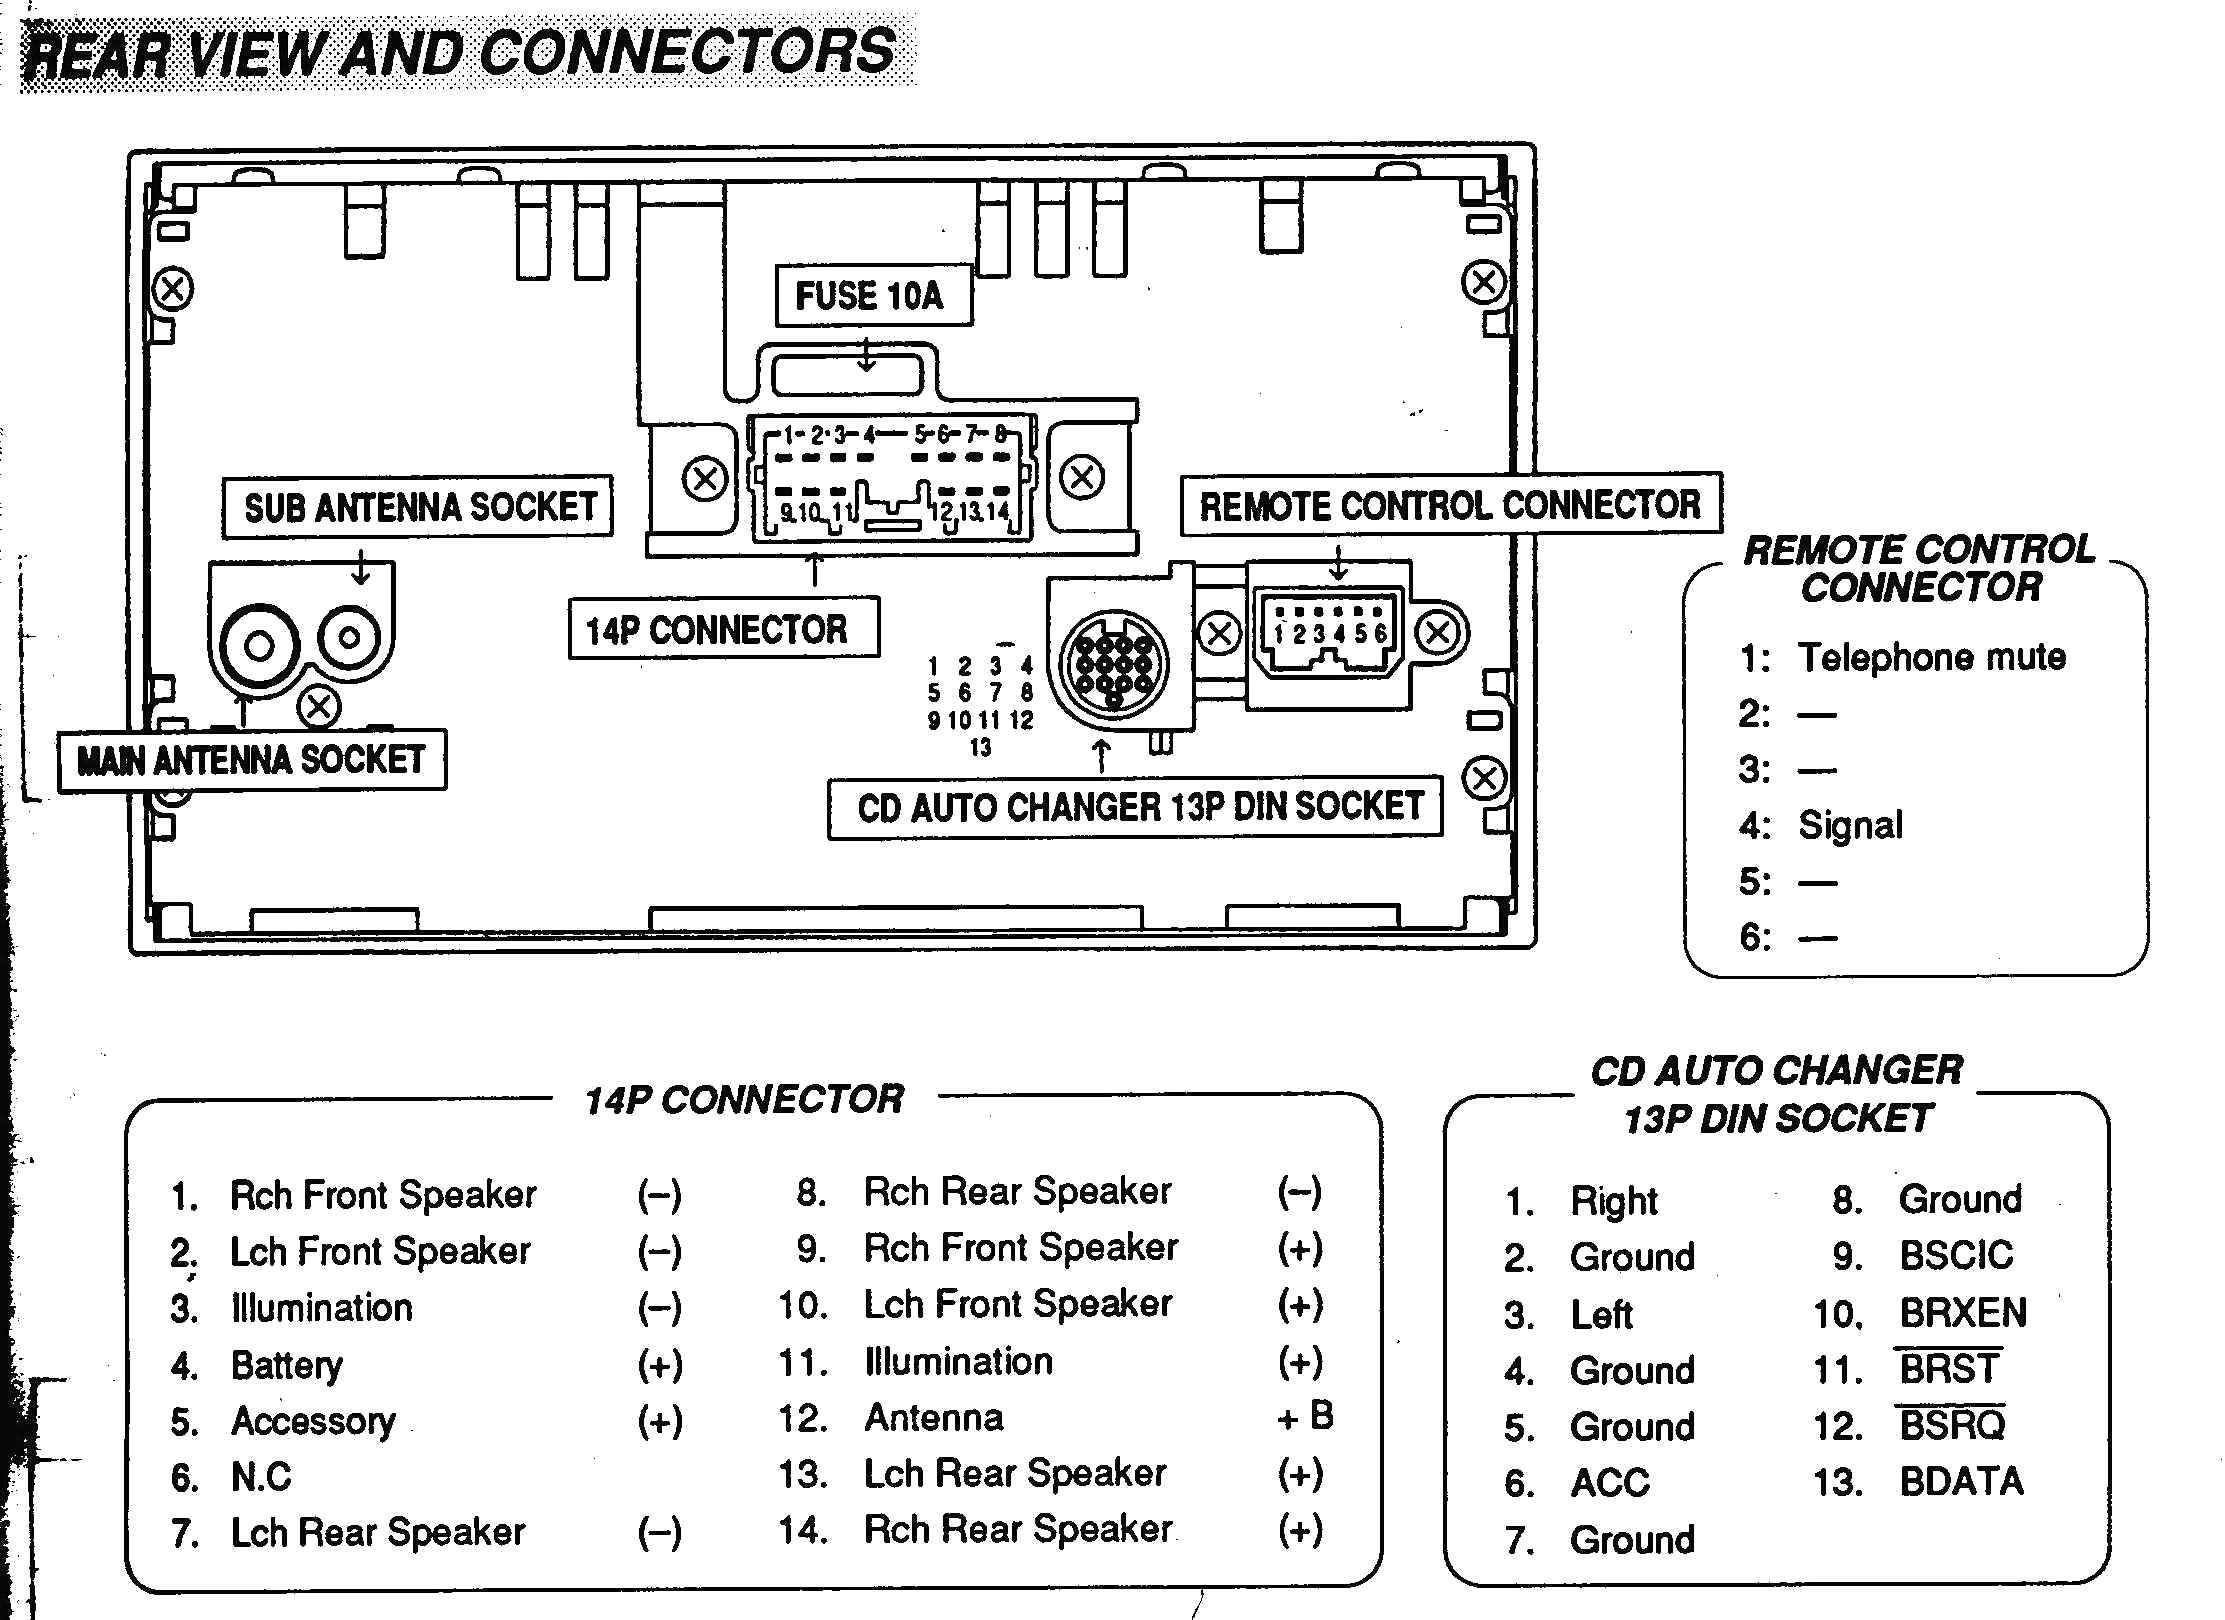 Factory Car Stereo Wiring Diagrams Car with Detaleted Wiring and Factory Stereo Diagrams Wiring Diagram Of Factory Car Stereo Wiring Diagrams